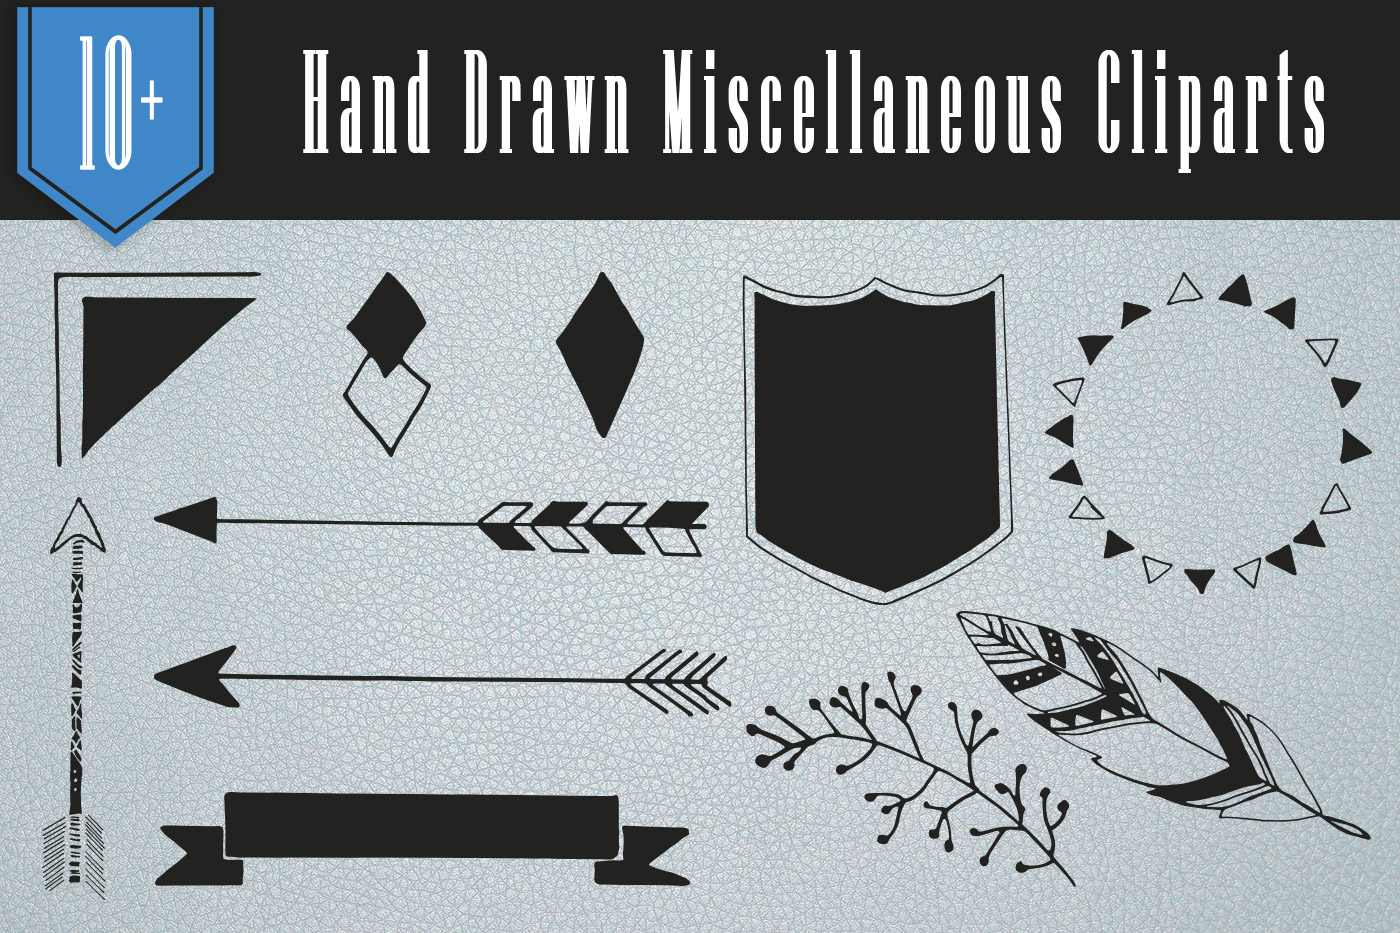 Free Handmade Miscellaneous Cliparts